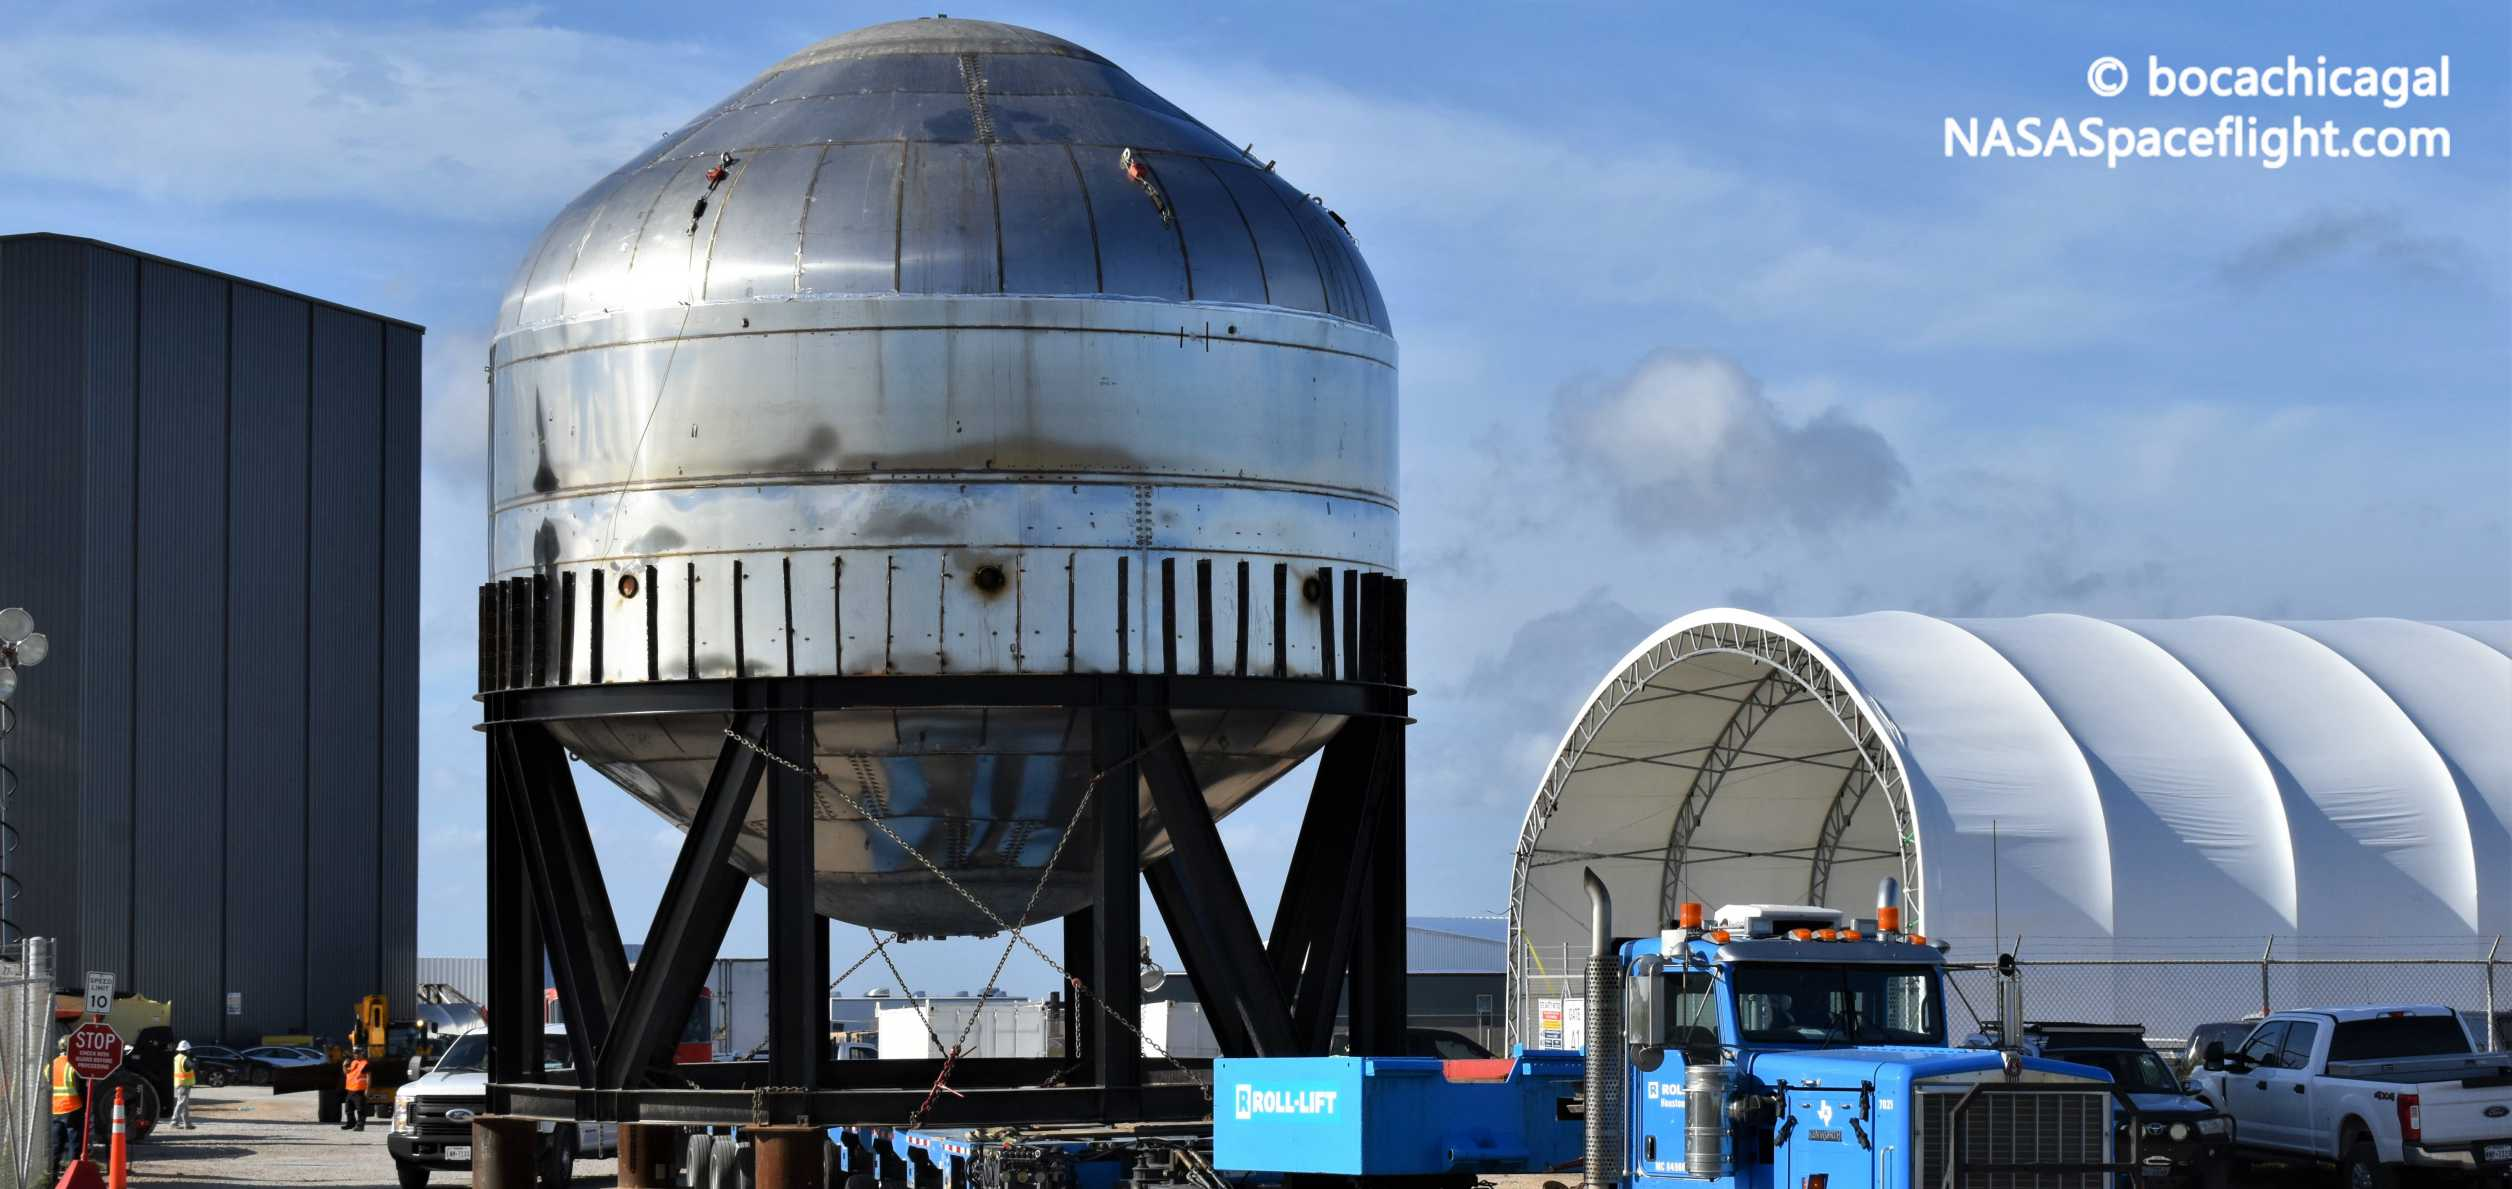 Starship Boca Chica 010920 (NASASpaceflight – bocachicagal) test tank transport 2 crop (c)